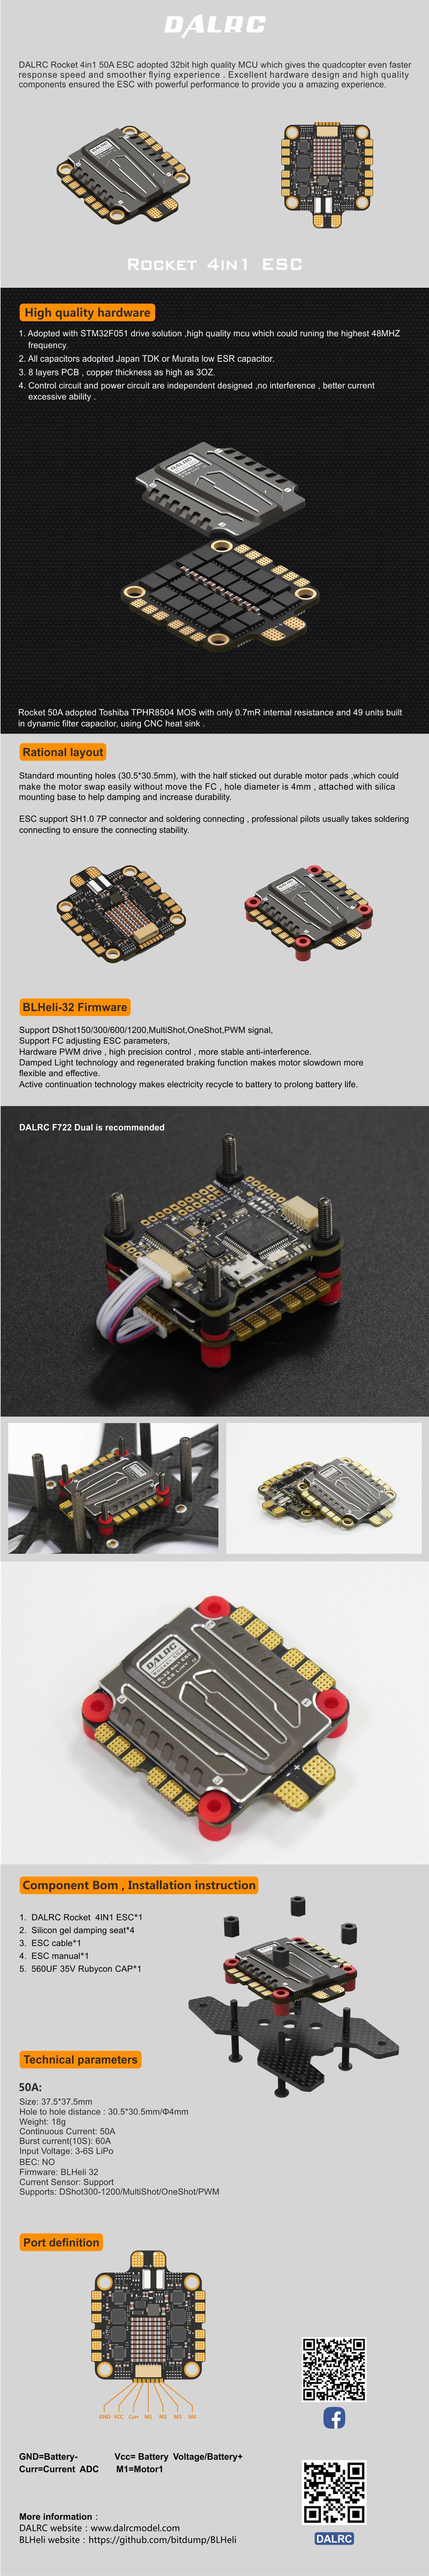 Dalrc Rocket 50a 3 6s Blheli 32 4 In 1 Esc Wiring Proximity Sensors Series Electrical Engineering Stack Includes